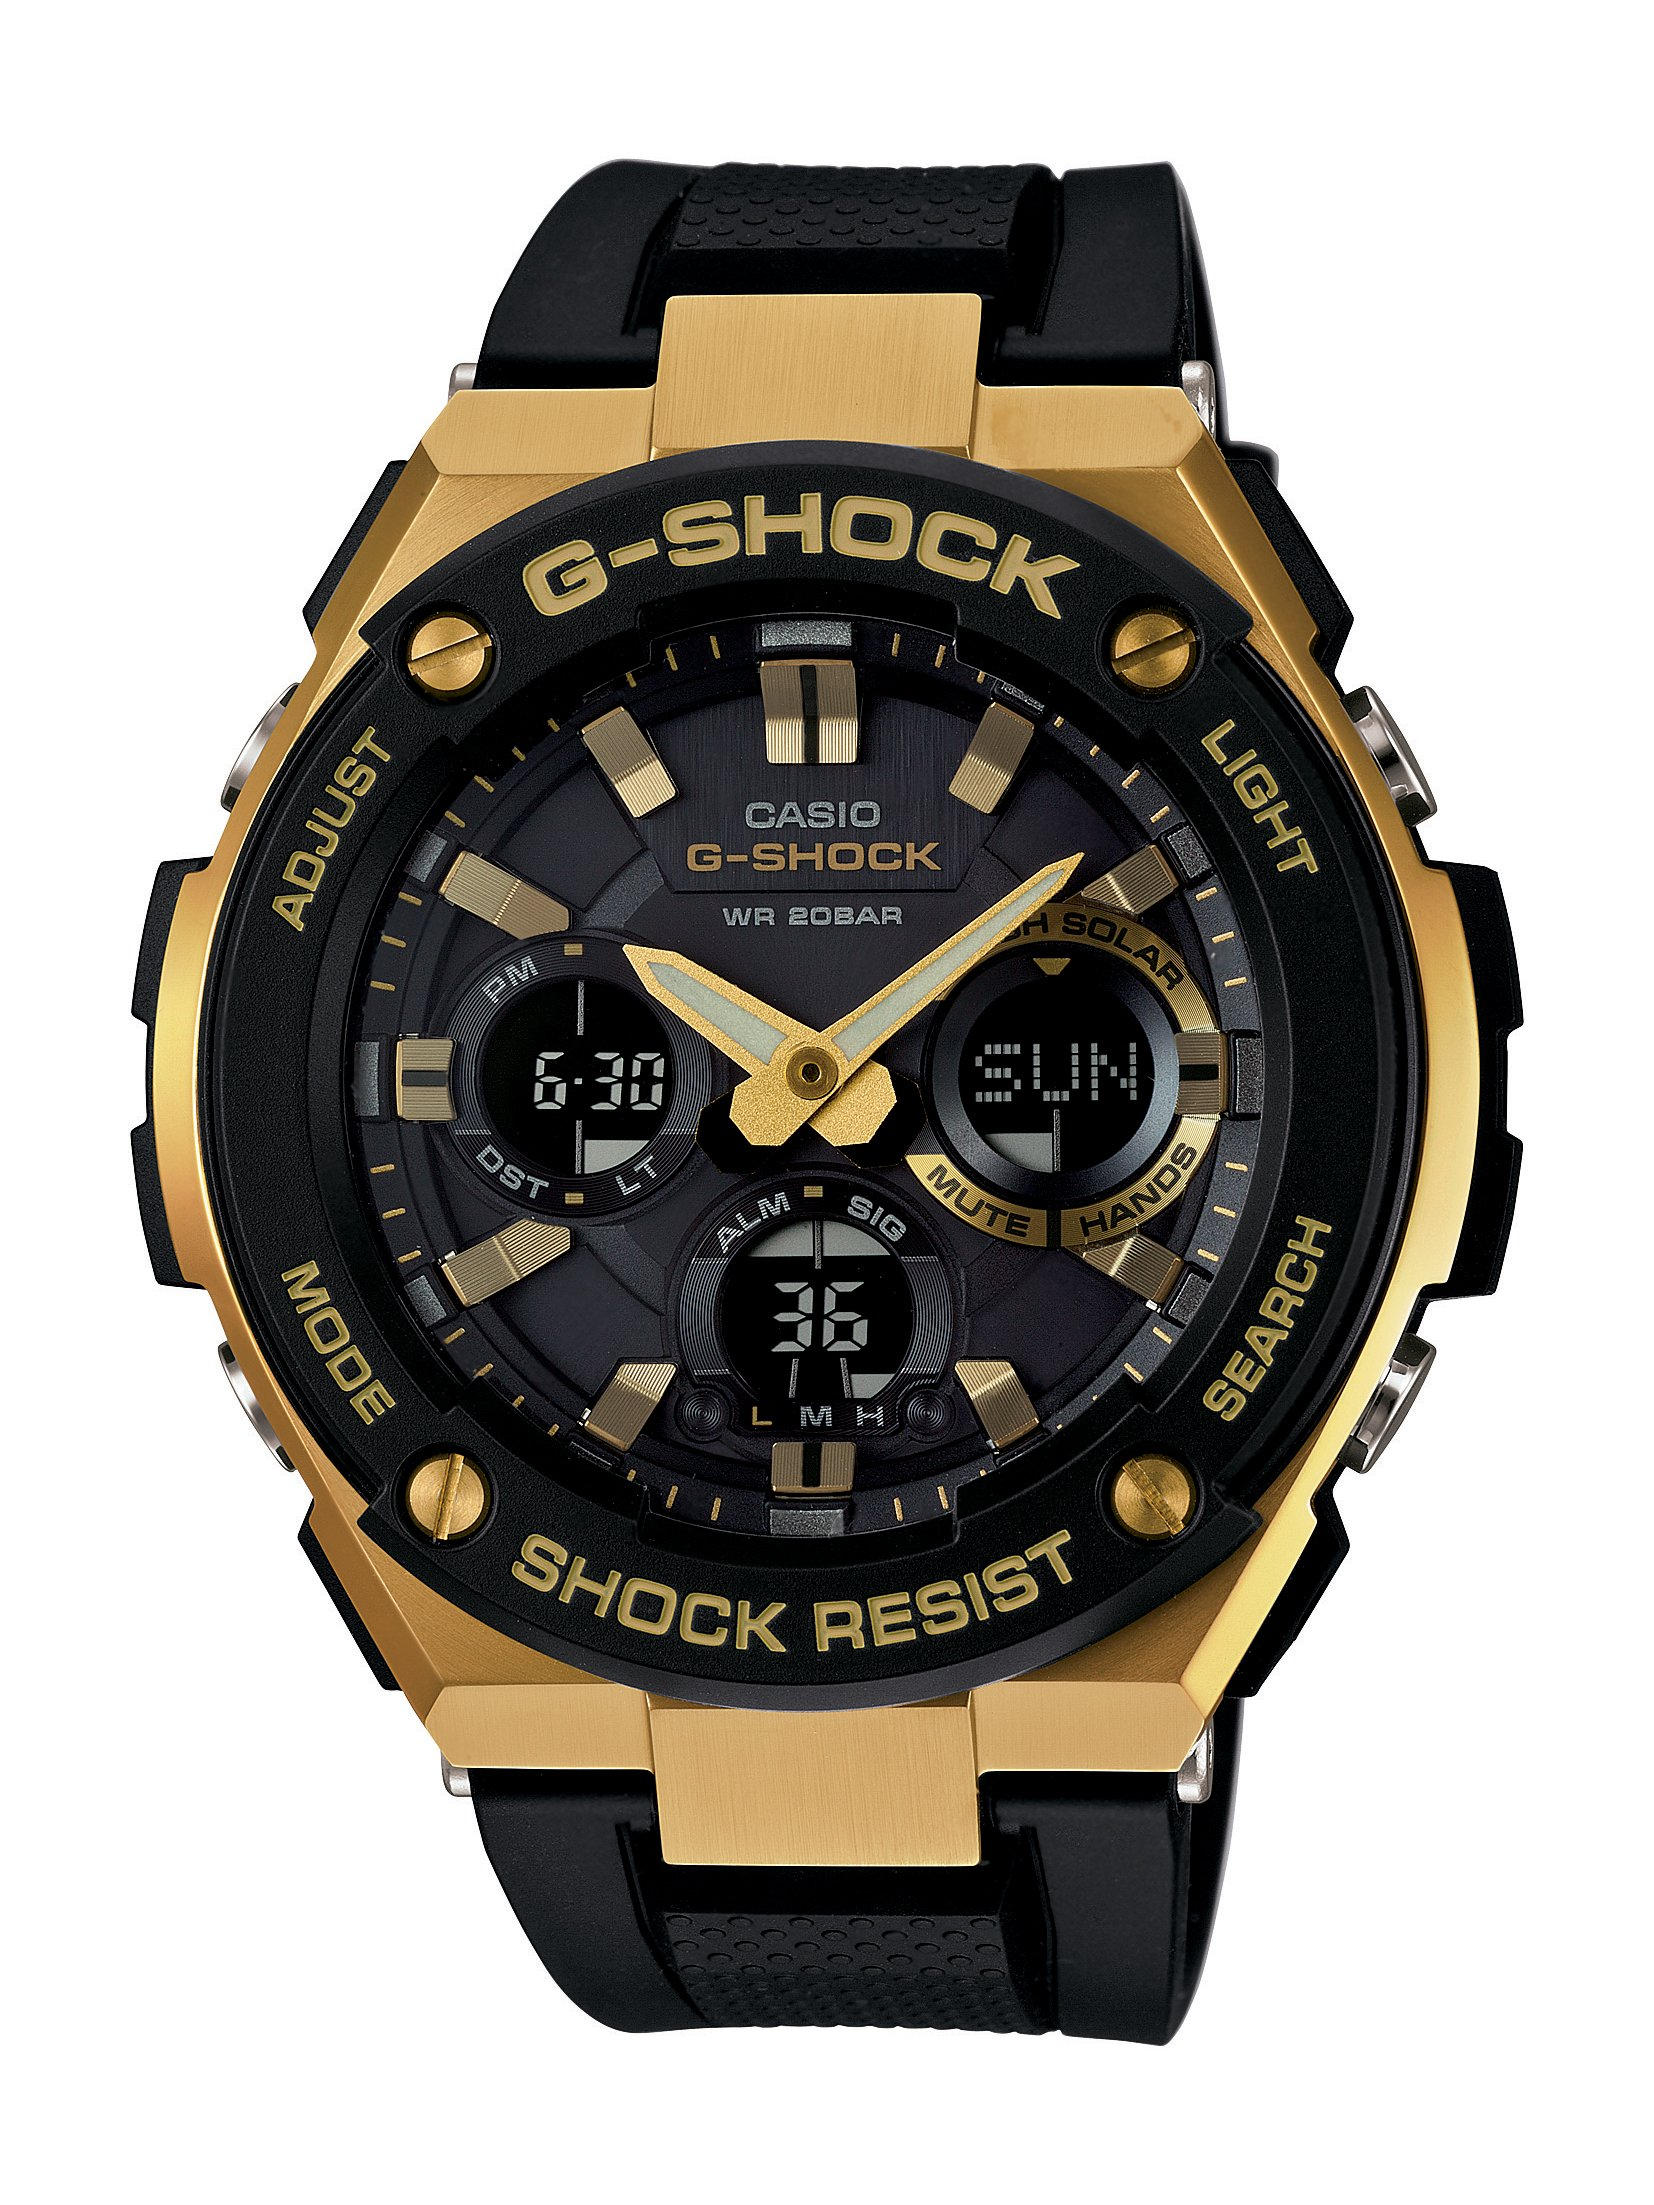 Casio G Shock Steel Series Solar Powered World Time Gw 9400dcj 1 Analog Digital Gold Black Resin Watch Gsts100g 1a